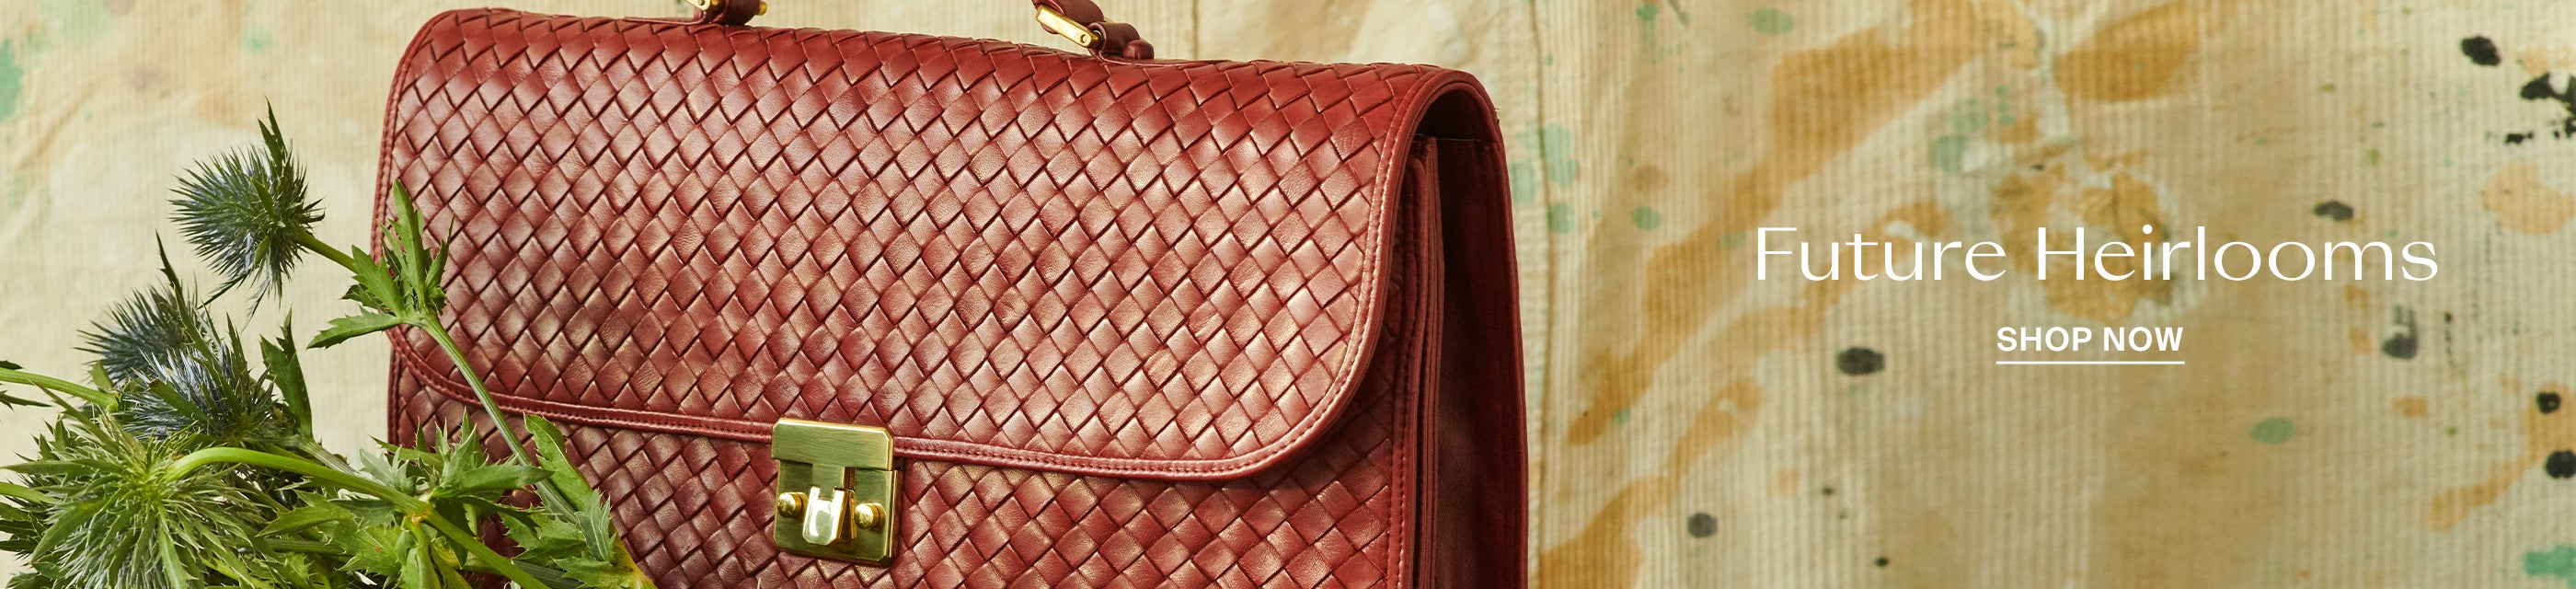 0b9fcb1c82a Luxury consignment sales. Shop for pre-owned designer handbags ...